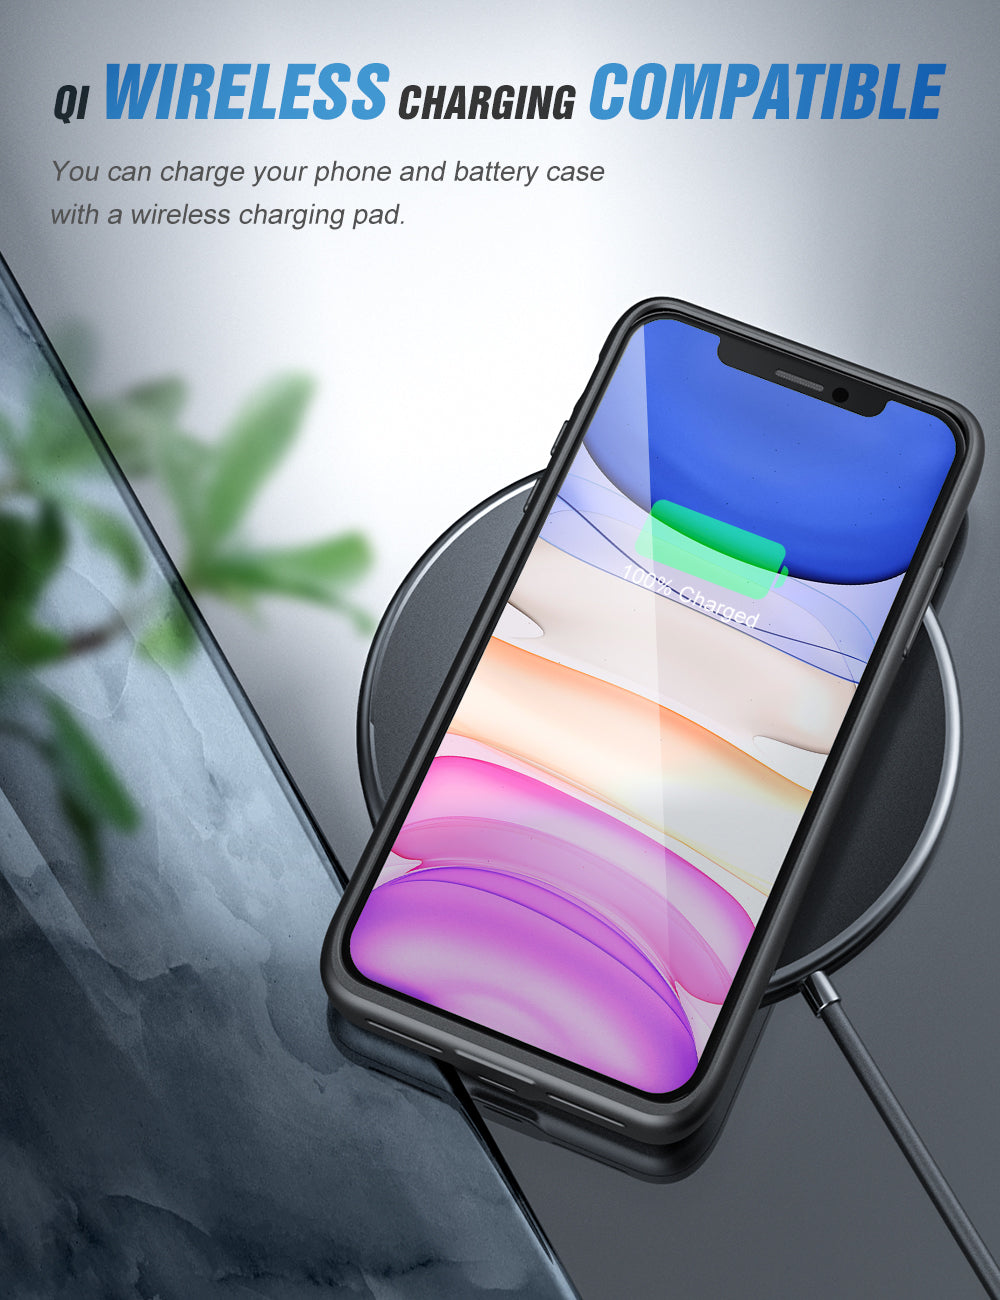 SlimJuicer iPhone 11 Pro Max 5000mAh Wireless Charging Battery Case